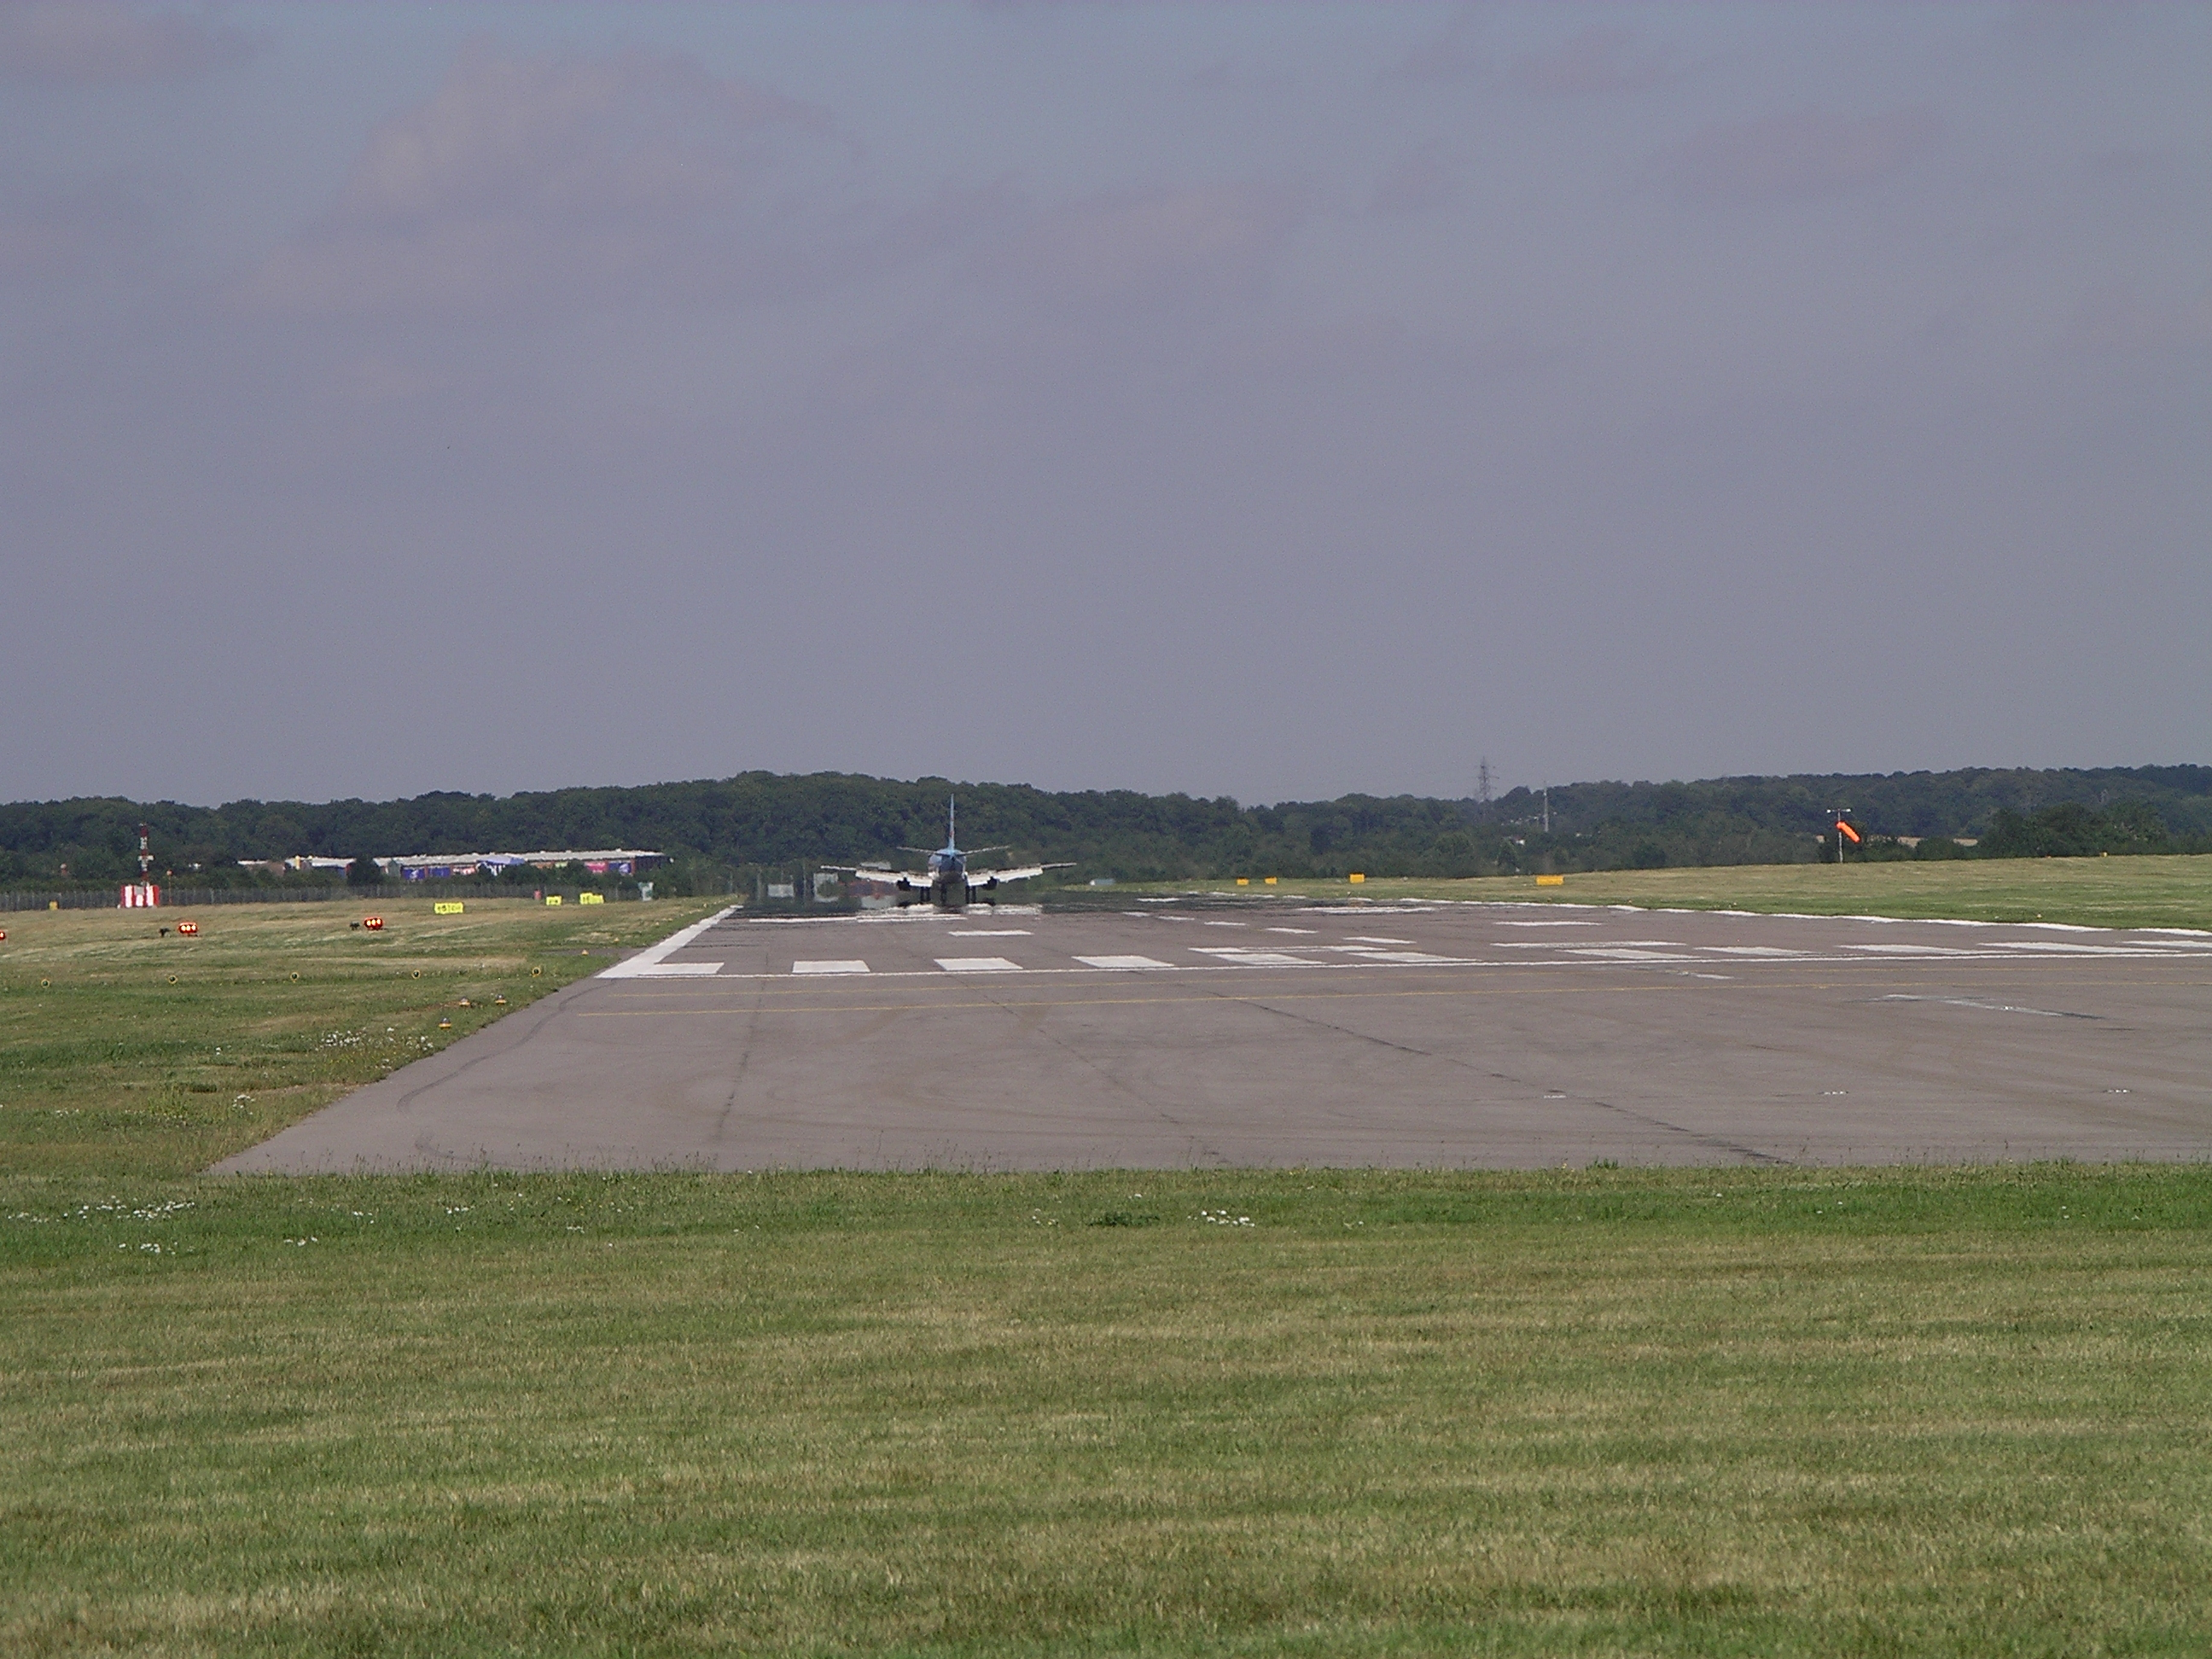 File:Coventry Airport runway landing 3g06.JPG - Wikipedia, the ...